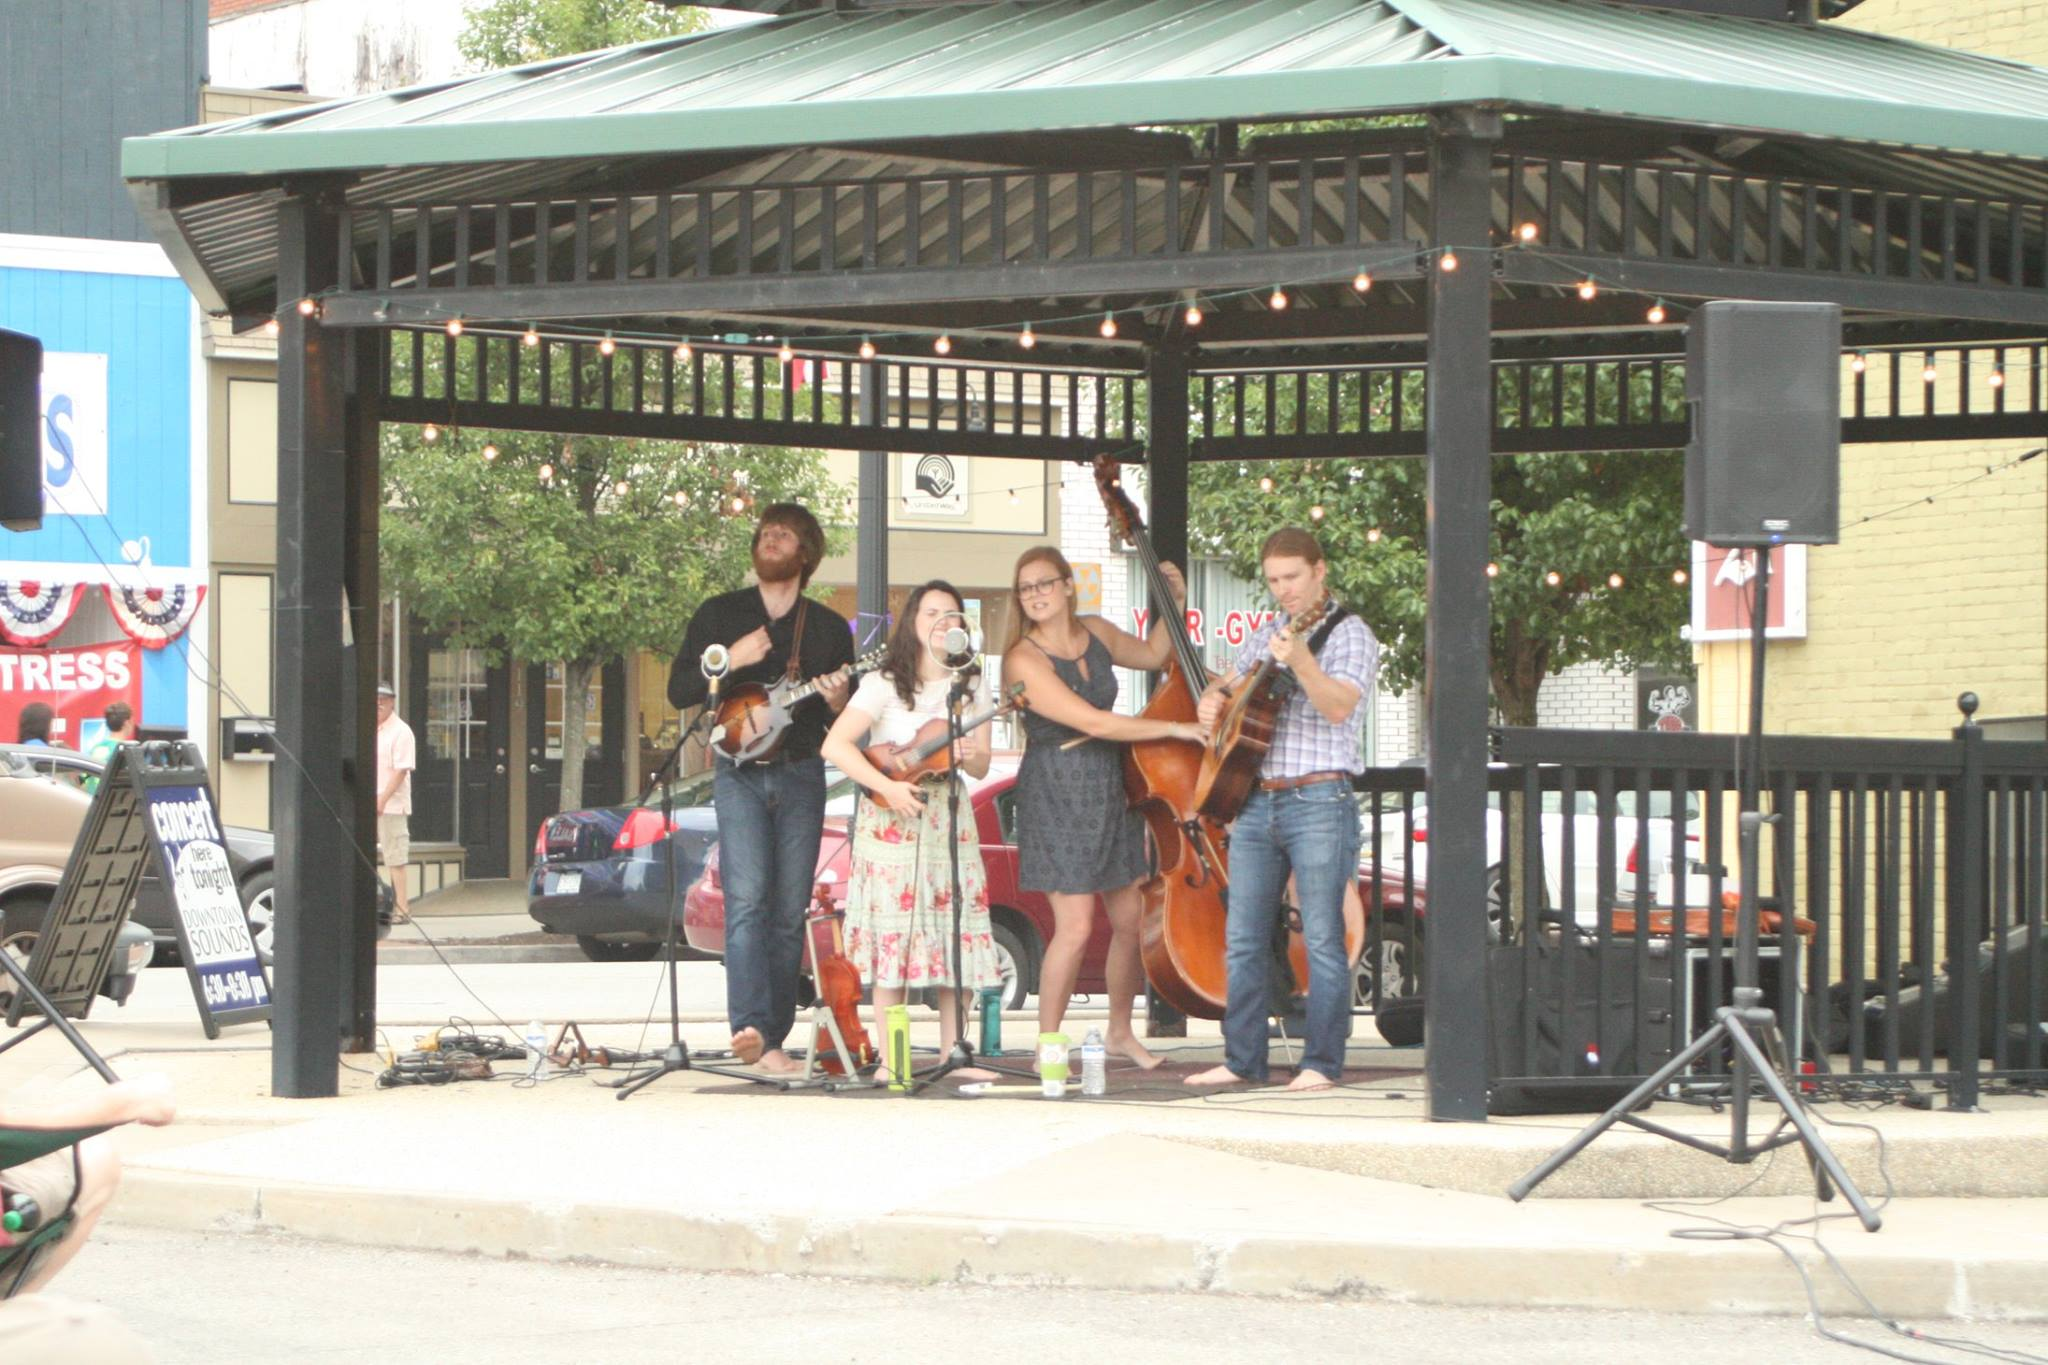 Downtown Sounds Concert Series in Grove City, PA.